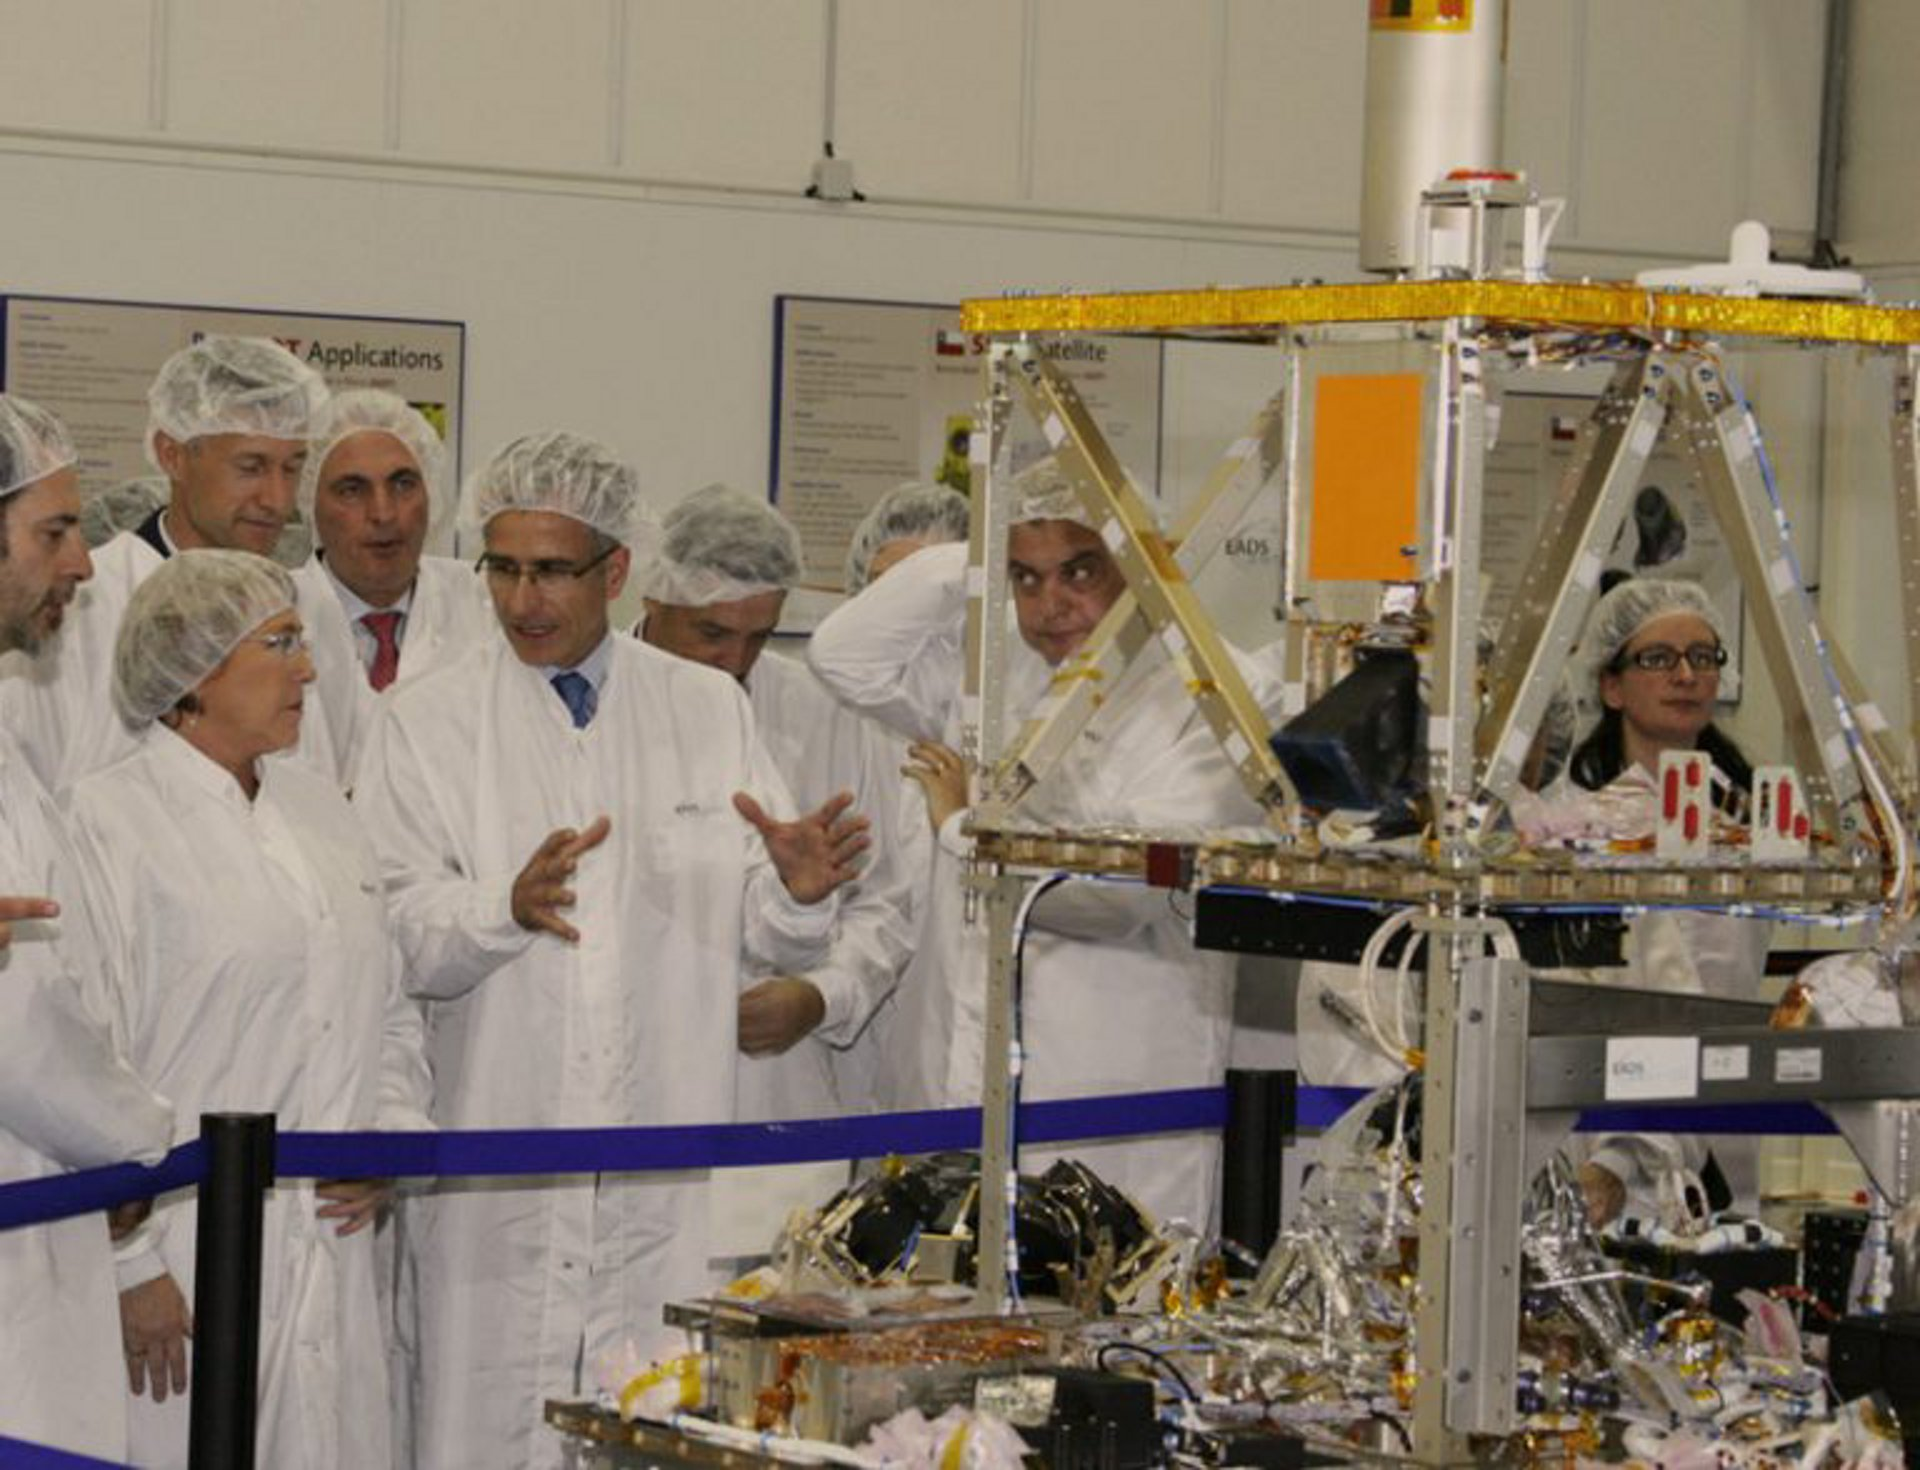 The SSOT (Sistema Satelital de Observación de la Tierra) Earth observation satellite, built by Airbus for Chile, is shown in the clean room during integration.